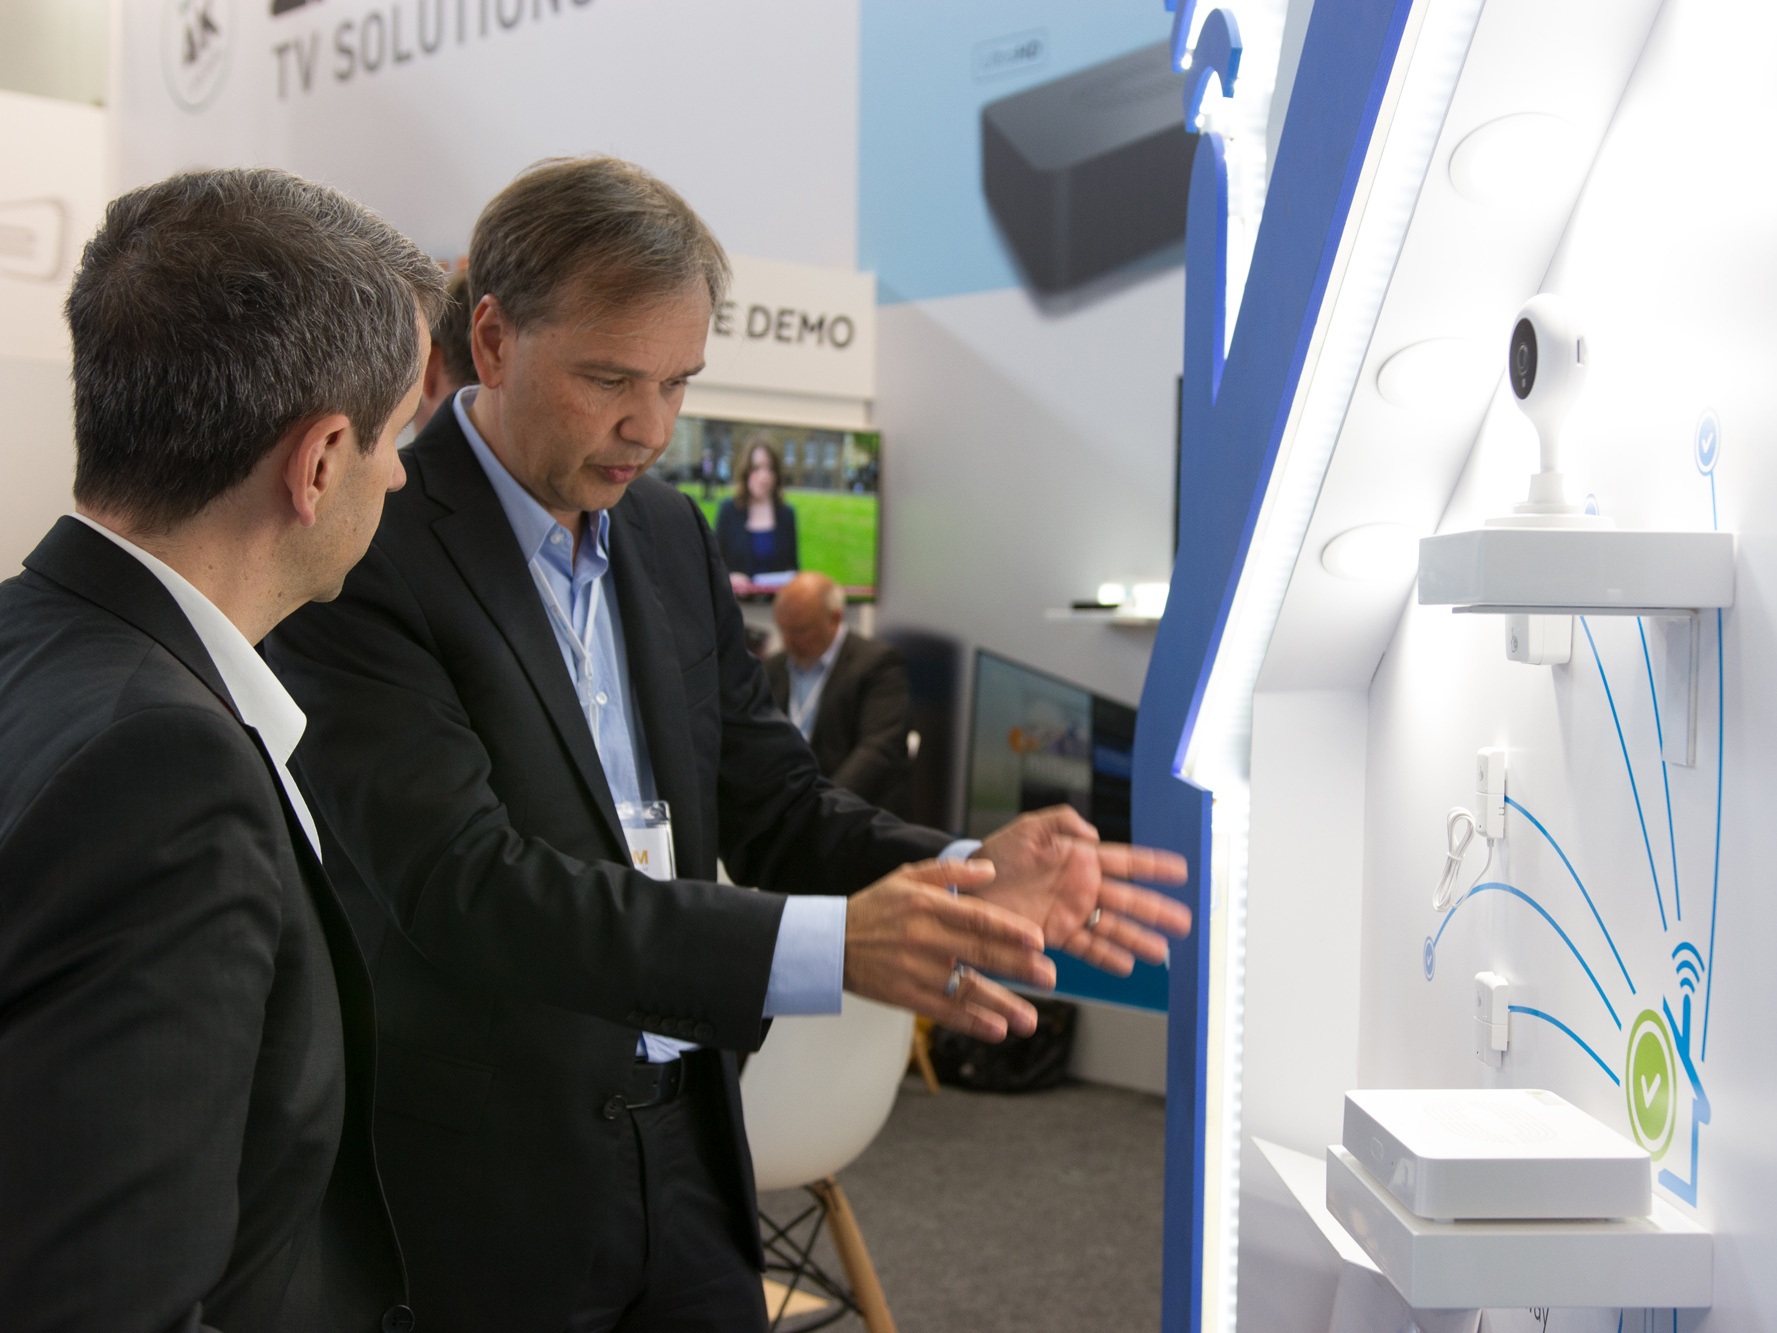 exhibition booth for Germany company at Spain trade fair